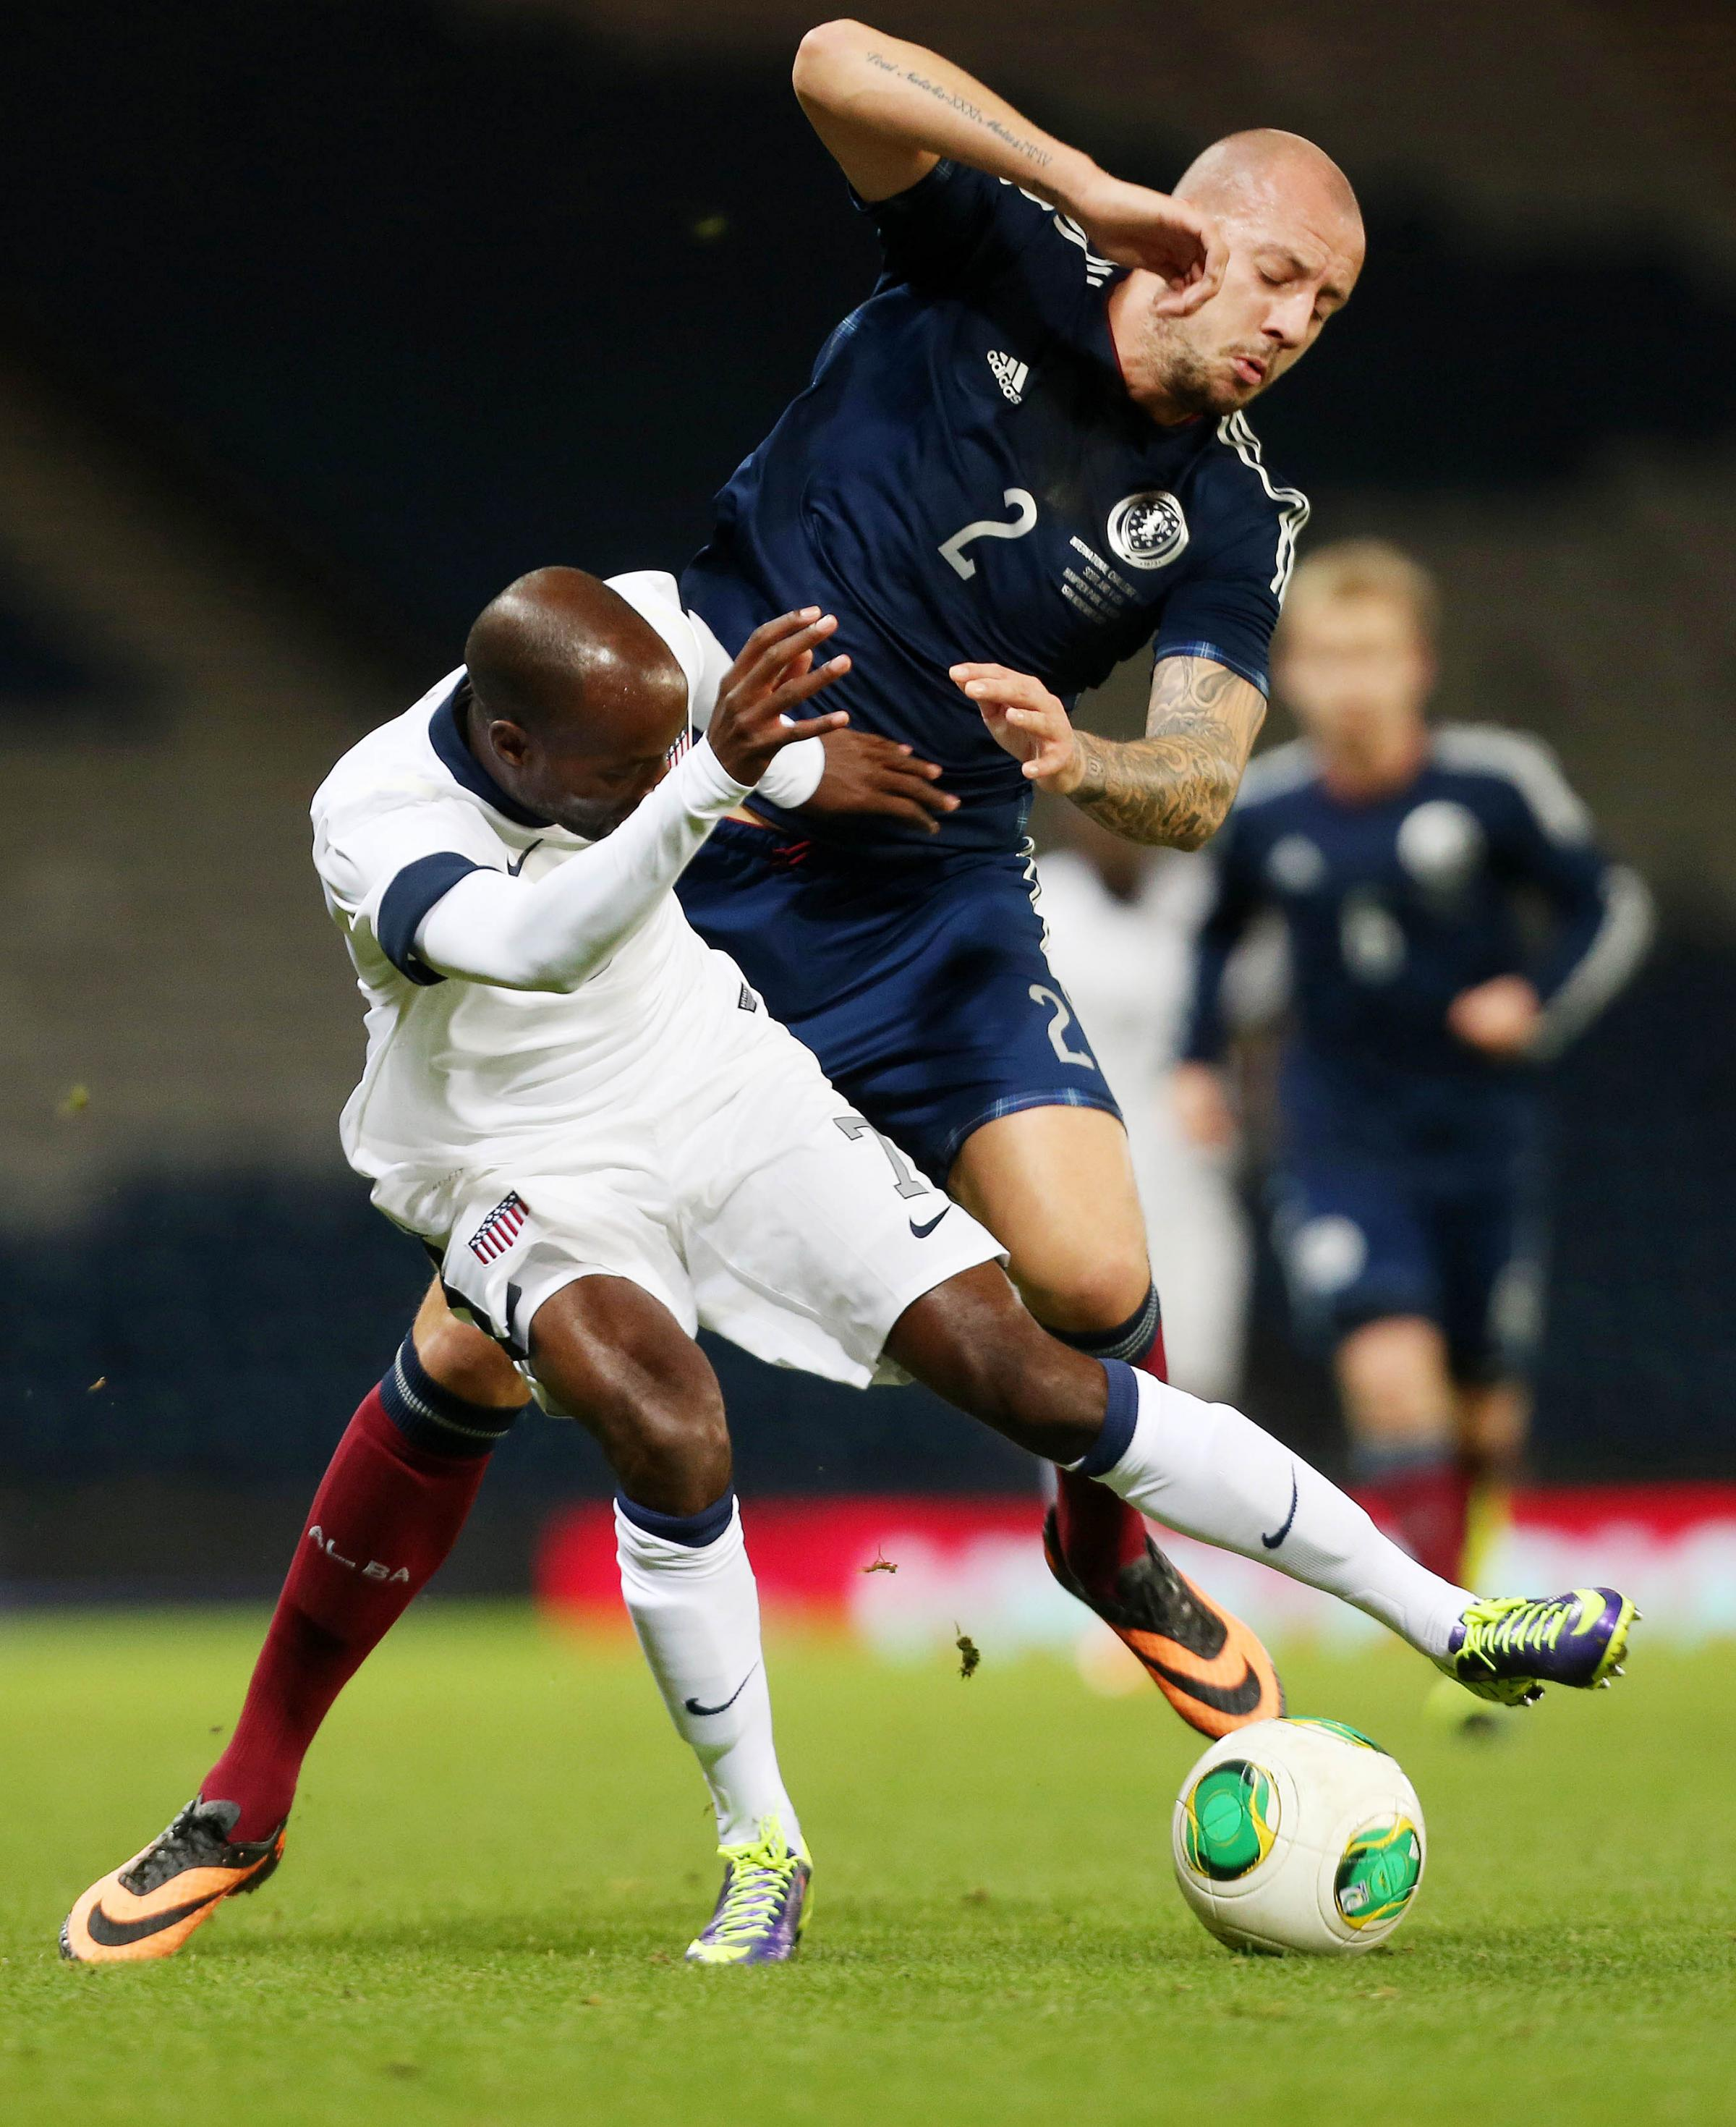 Scottish international Alan Hutton, right, has joined Wanderers on loan